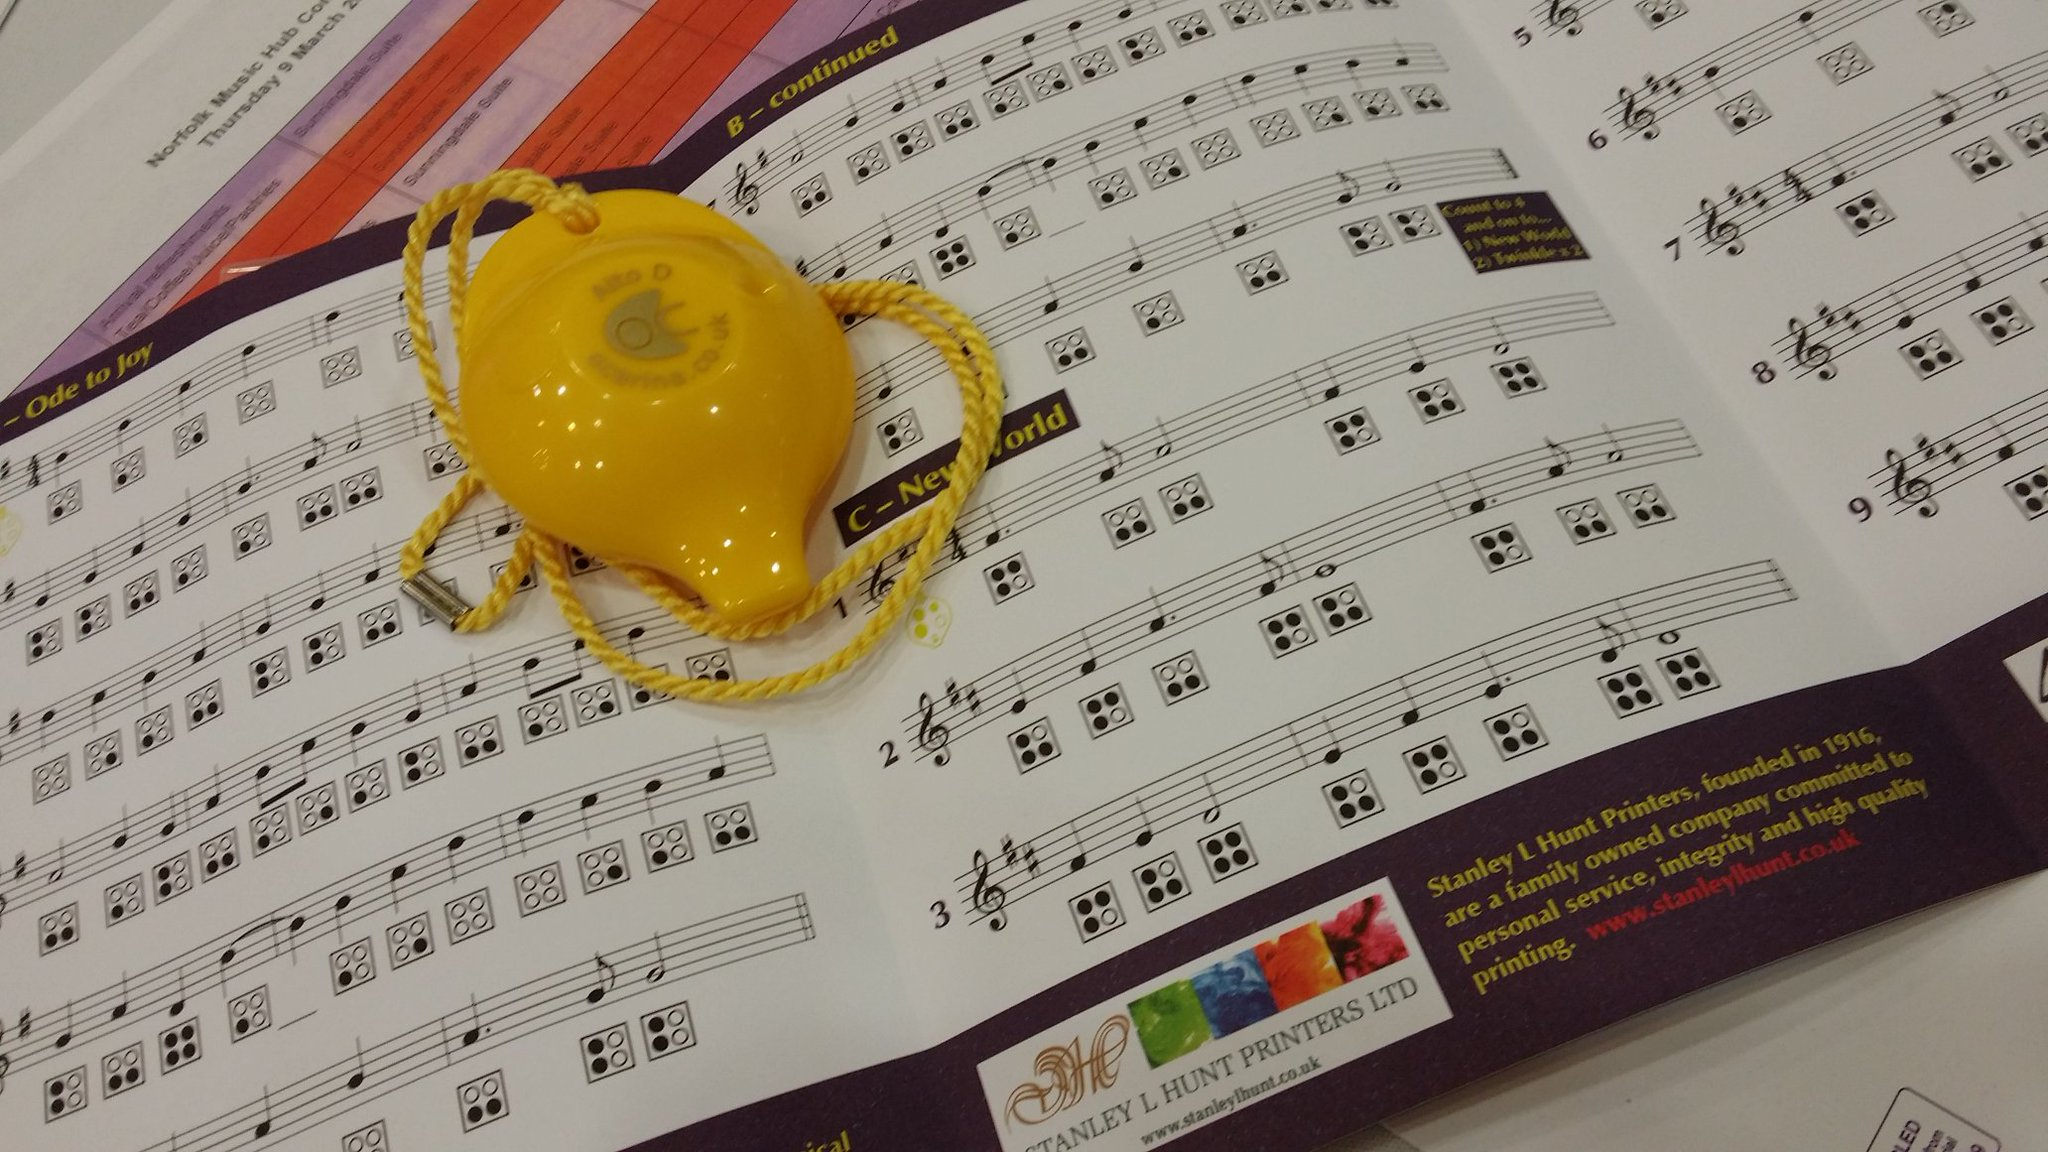 Just learned to play the ocarina at @NMHub #nmhubexpo @OrmistonVenture https://t.co/tD96uQlFRf